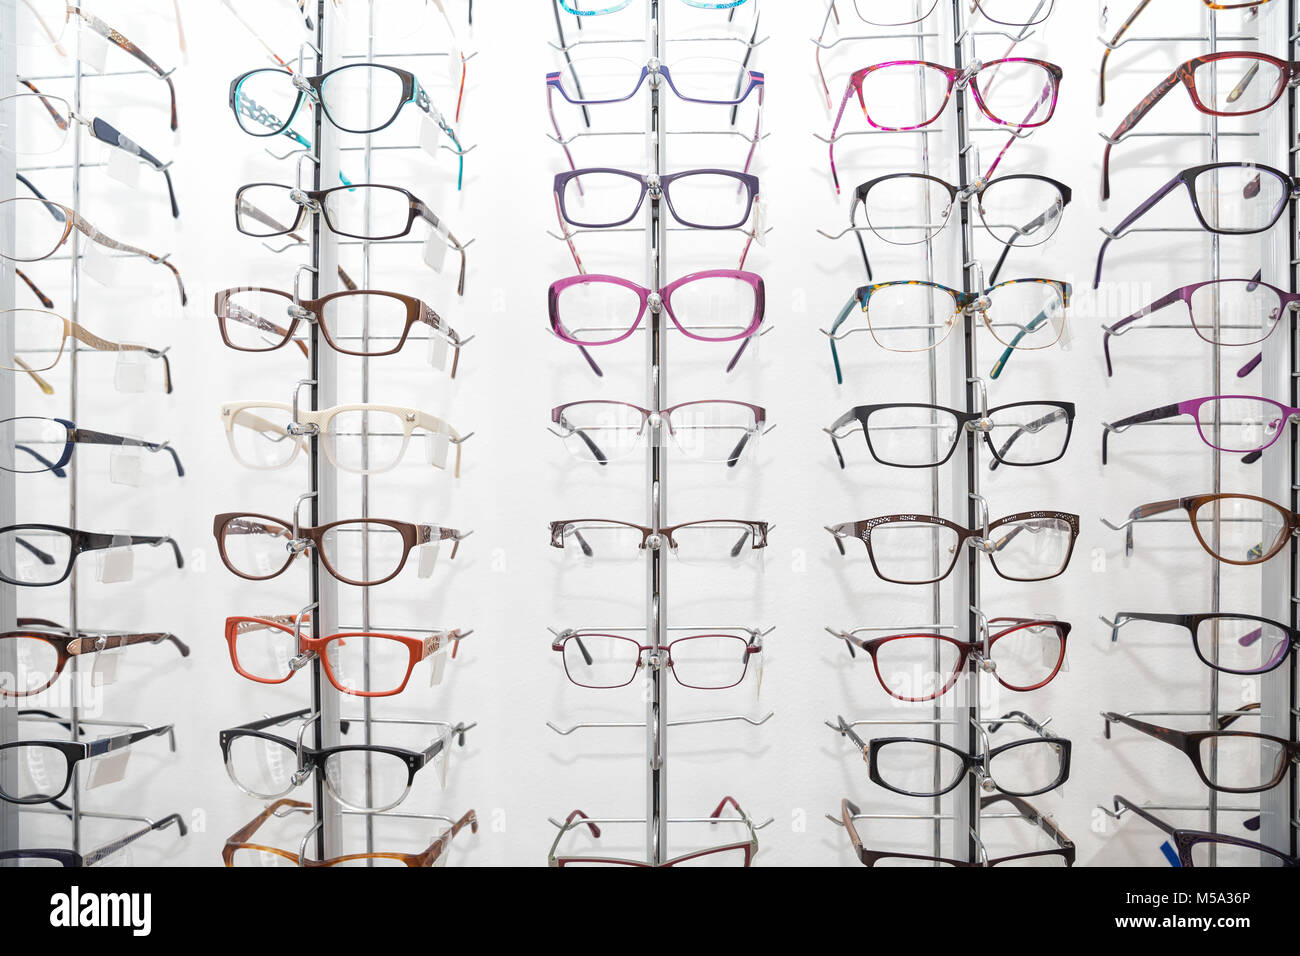 Rack with spectacle frames in an optician's shop - Stock Image